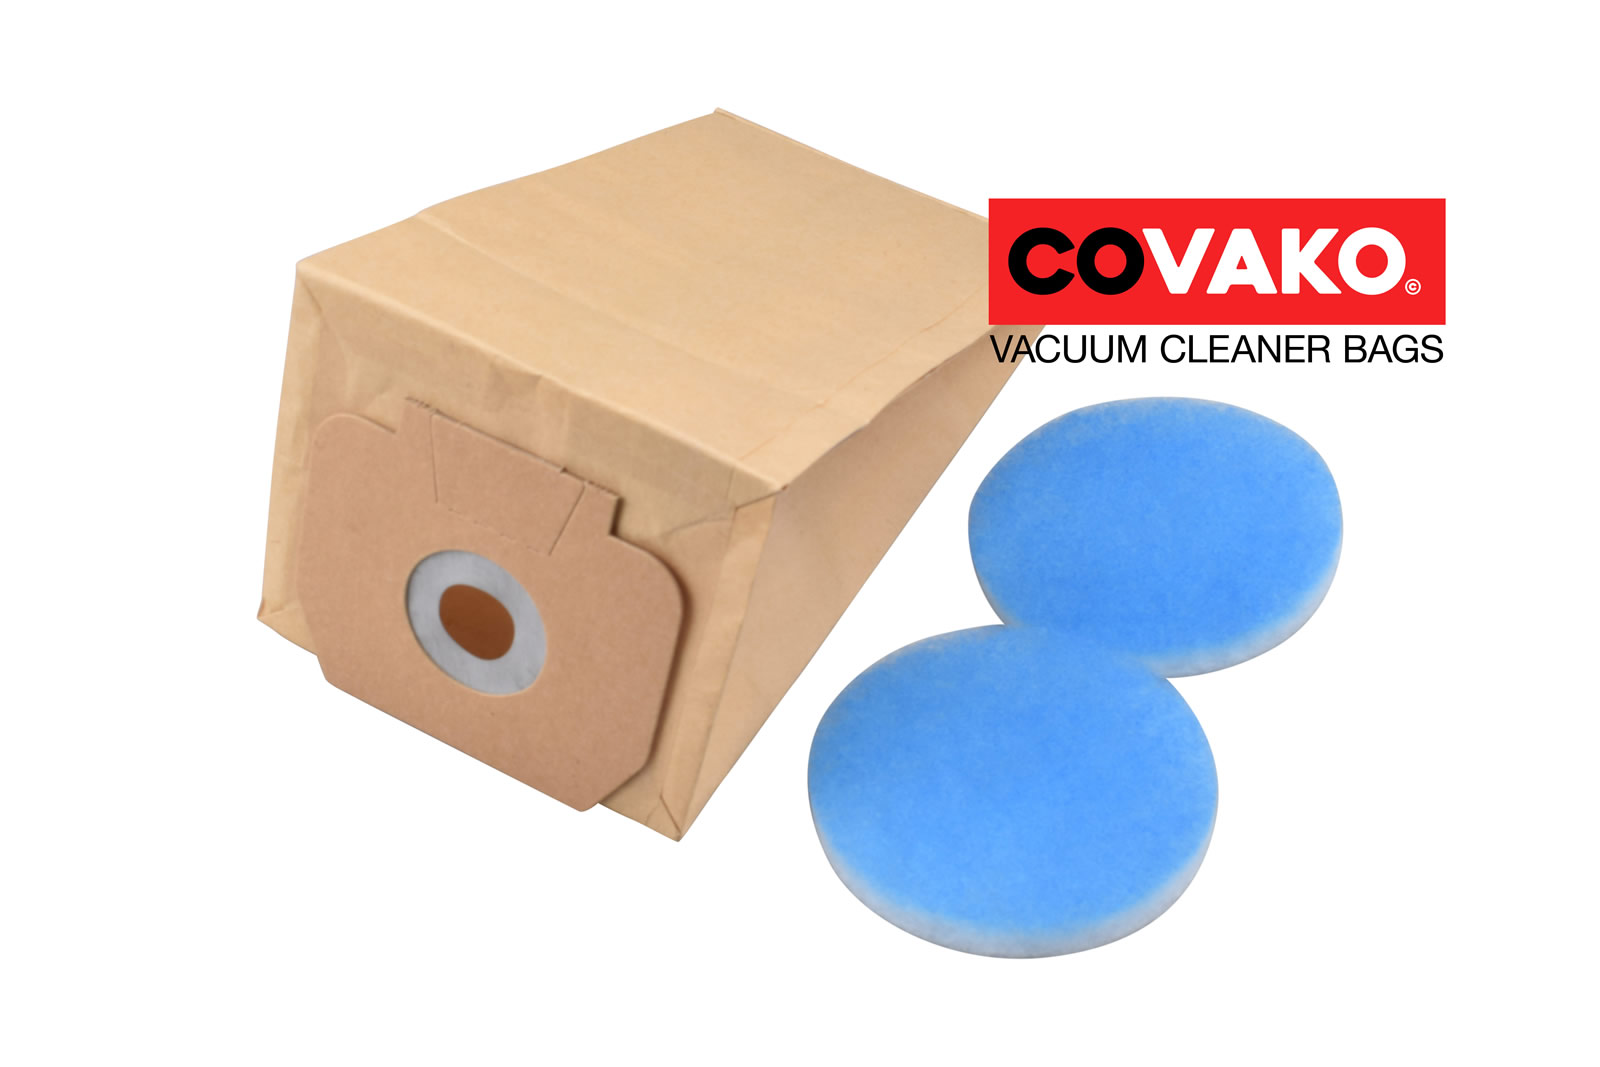 Ivac RS 09 / Paper - Ivac vacuum cleaner bags